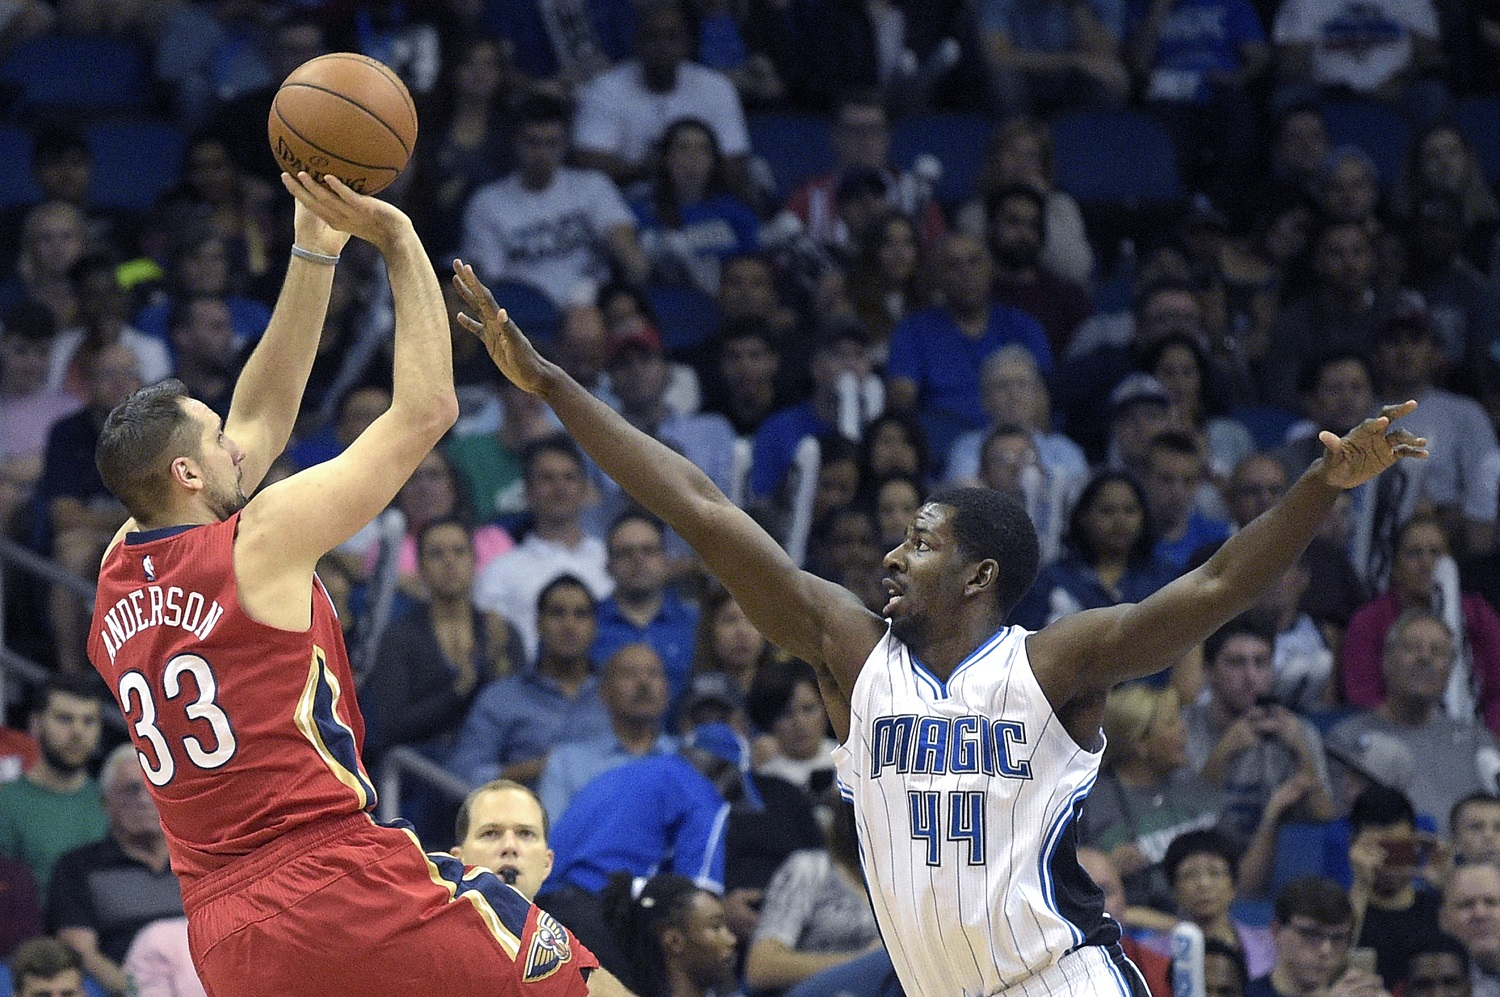 New Orleans Pelicans forward Ryan Anderson (33) goes up for a shot in front of Orlando Magic forward Andrew Nicholson (44) during the first half of an NBA basketball game in Orlando, Fla., Monday, Dec. 28, 2015. (AP Photo/Phelan M. Ebenhack)